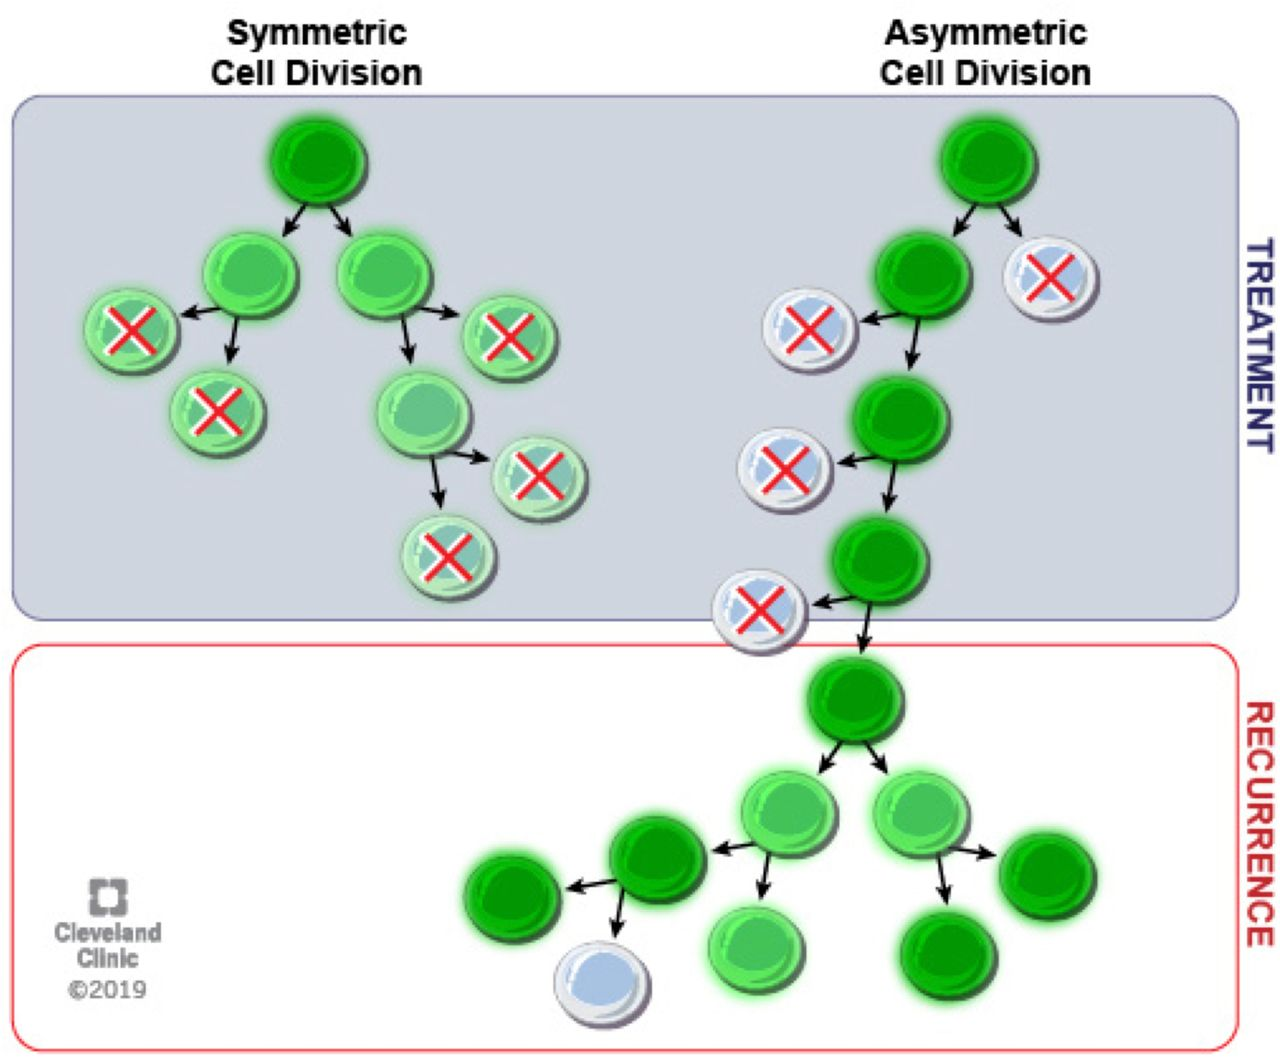 Asymmetric Division Promotes Therapeutic Resistance in